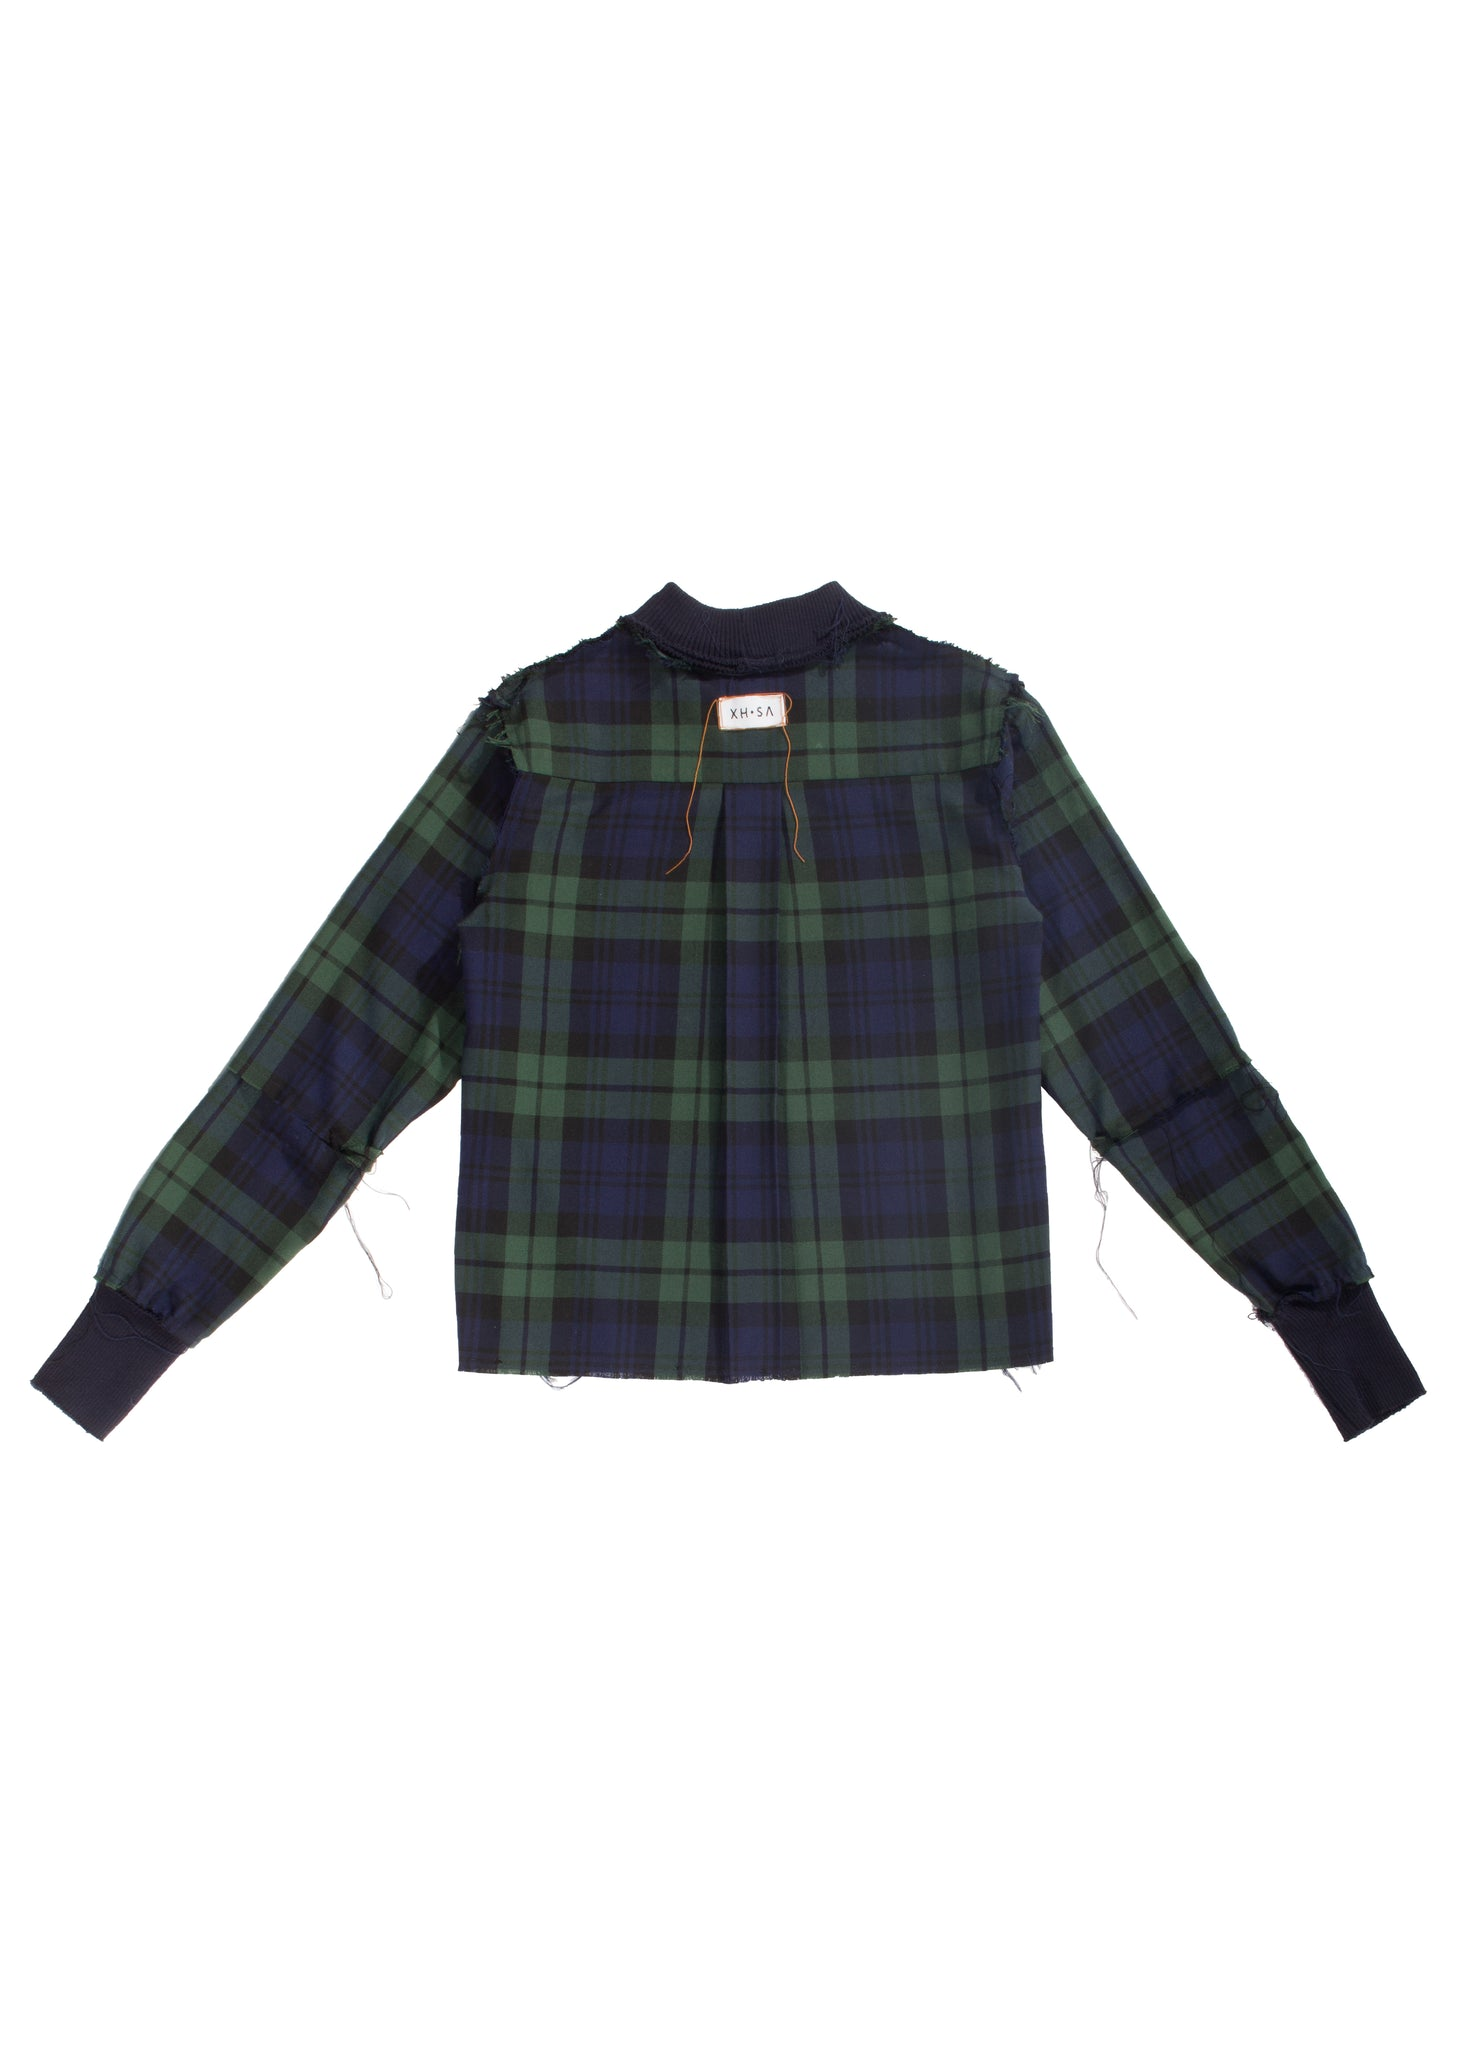 Plaid flannel raw edge sweater